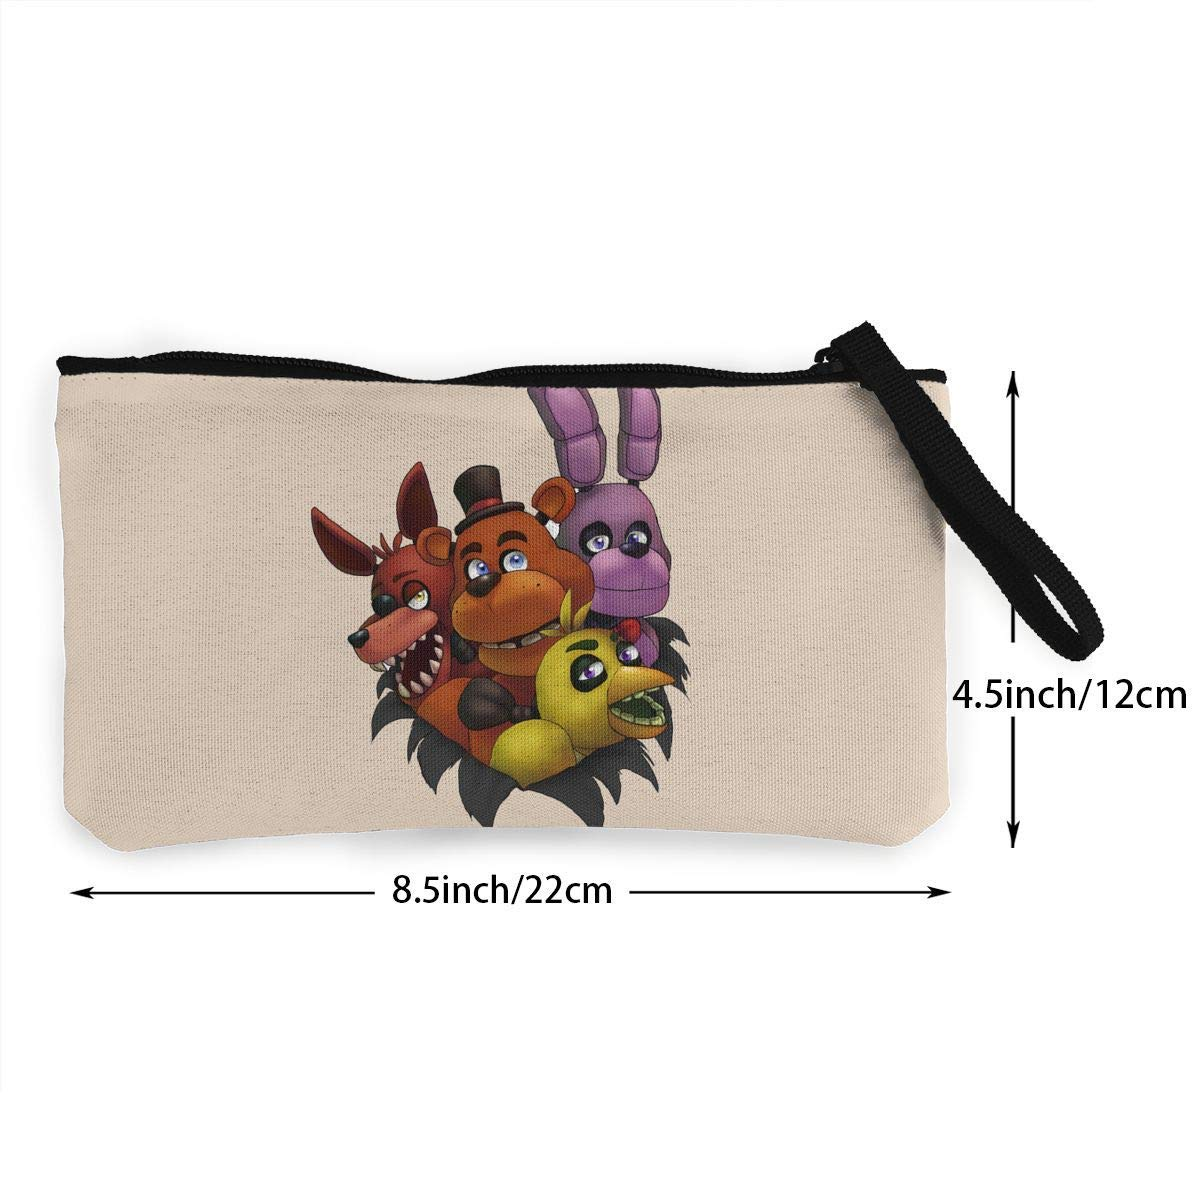 Five Nights At Freddys Canvas Cash Coin Purse Make Up Bag Cellphone Bag With Zipper And Handle